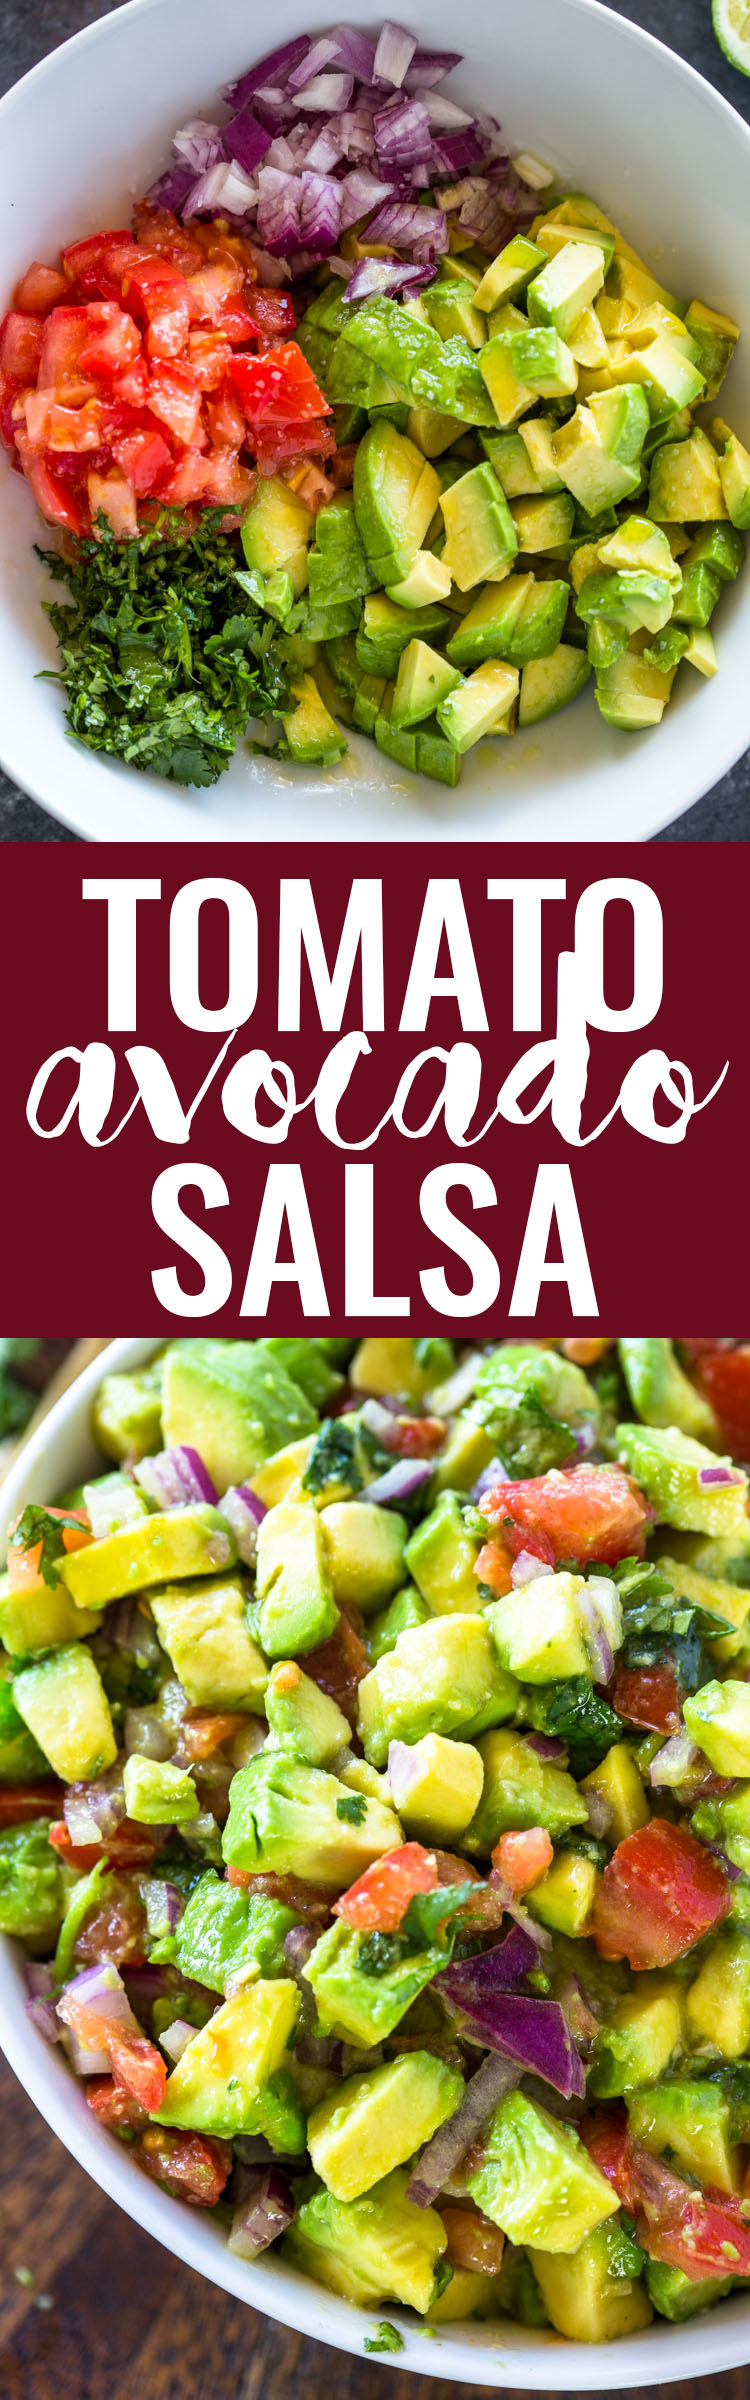 The Best Avocado & Tomato Salsa